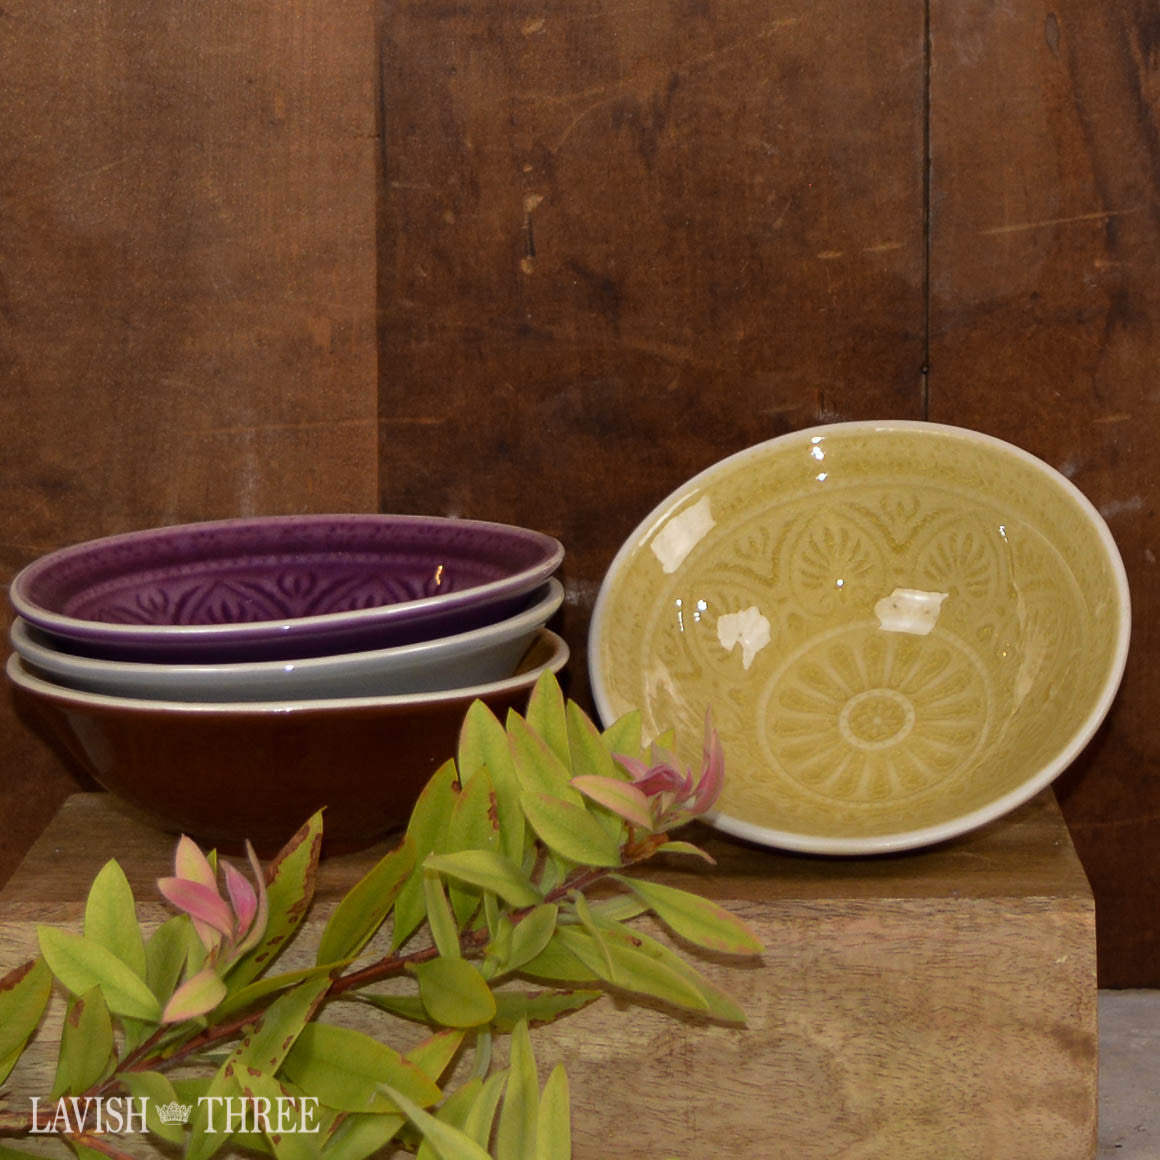 Embossed boho country chic farmhouse eclectic stoneware bowls